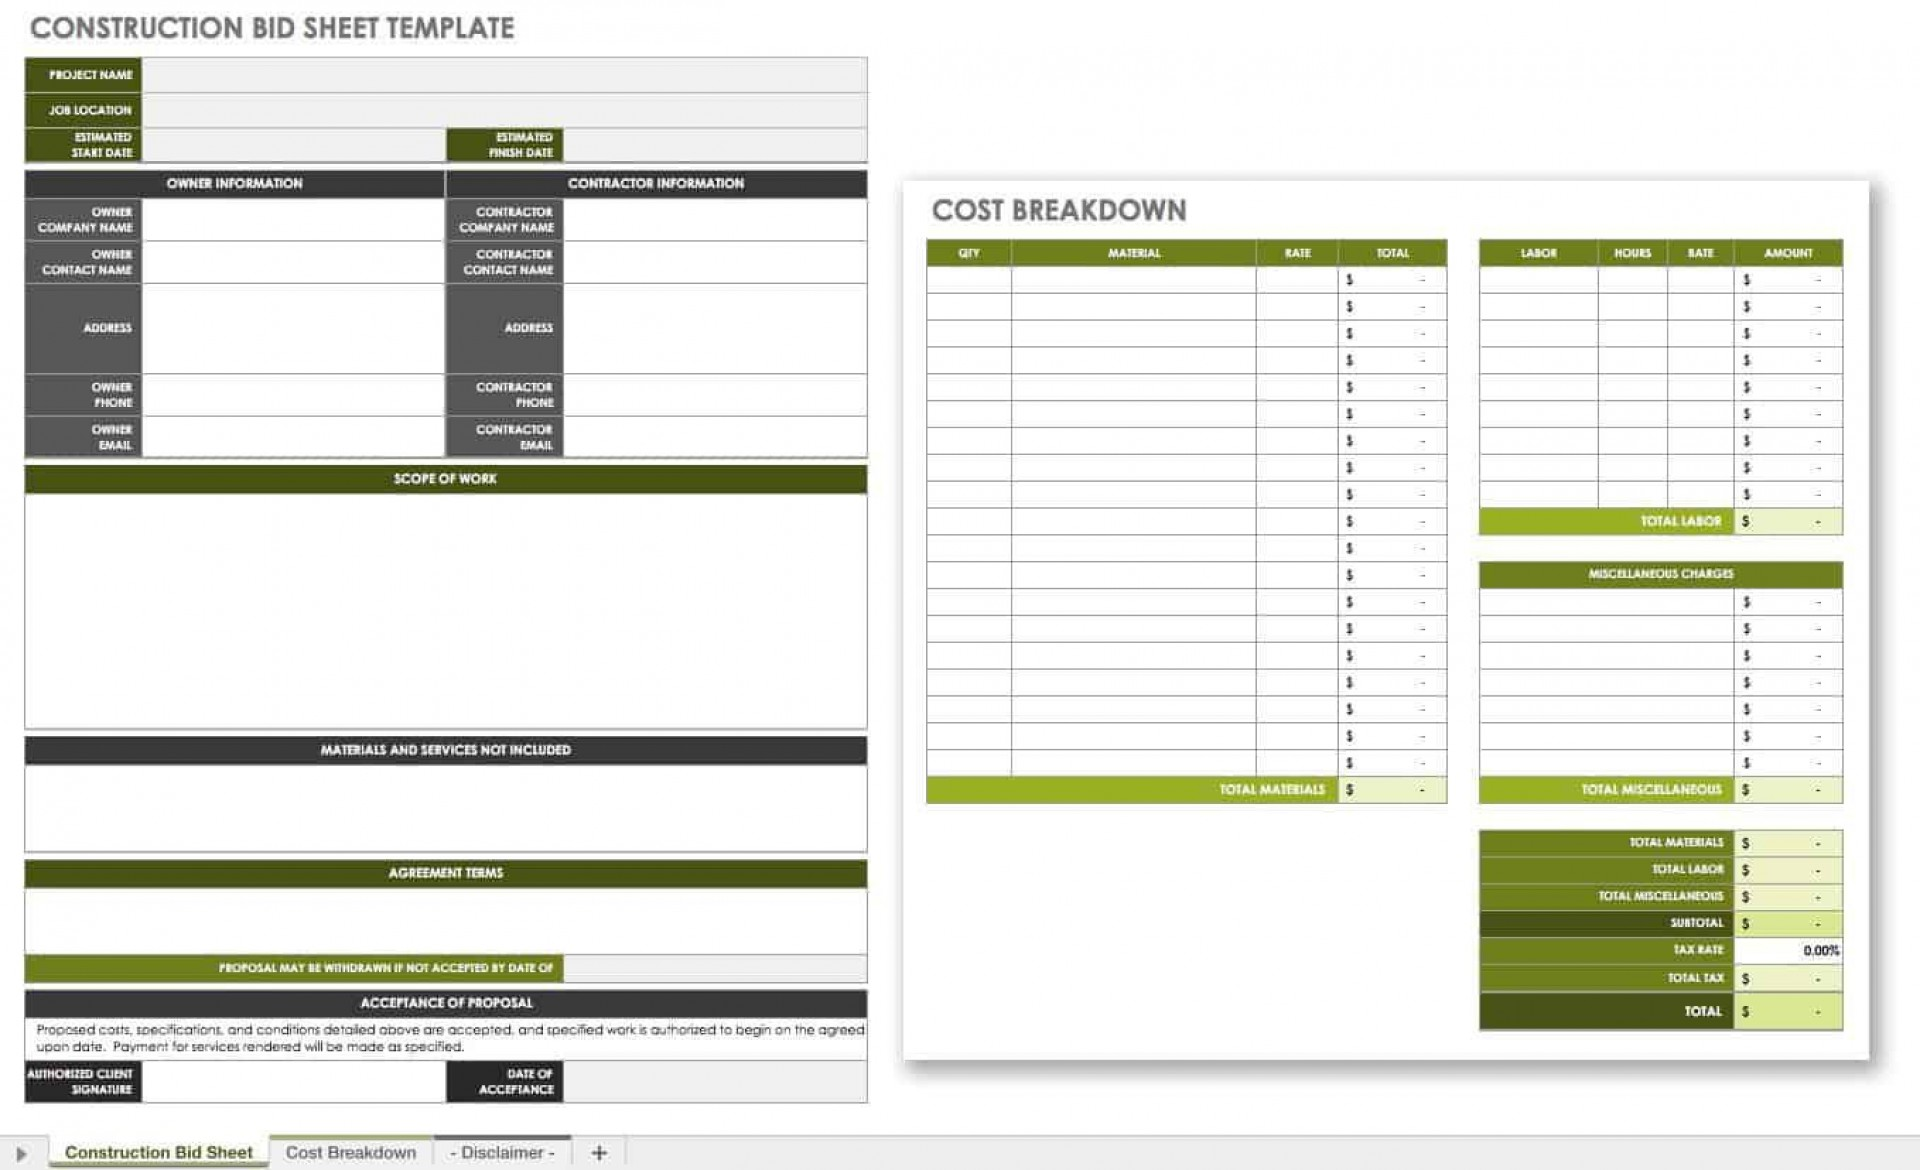 007 Incredible Construction Bid Template Free Excel Highest Quality 1920